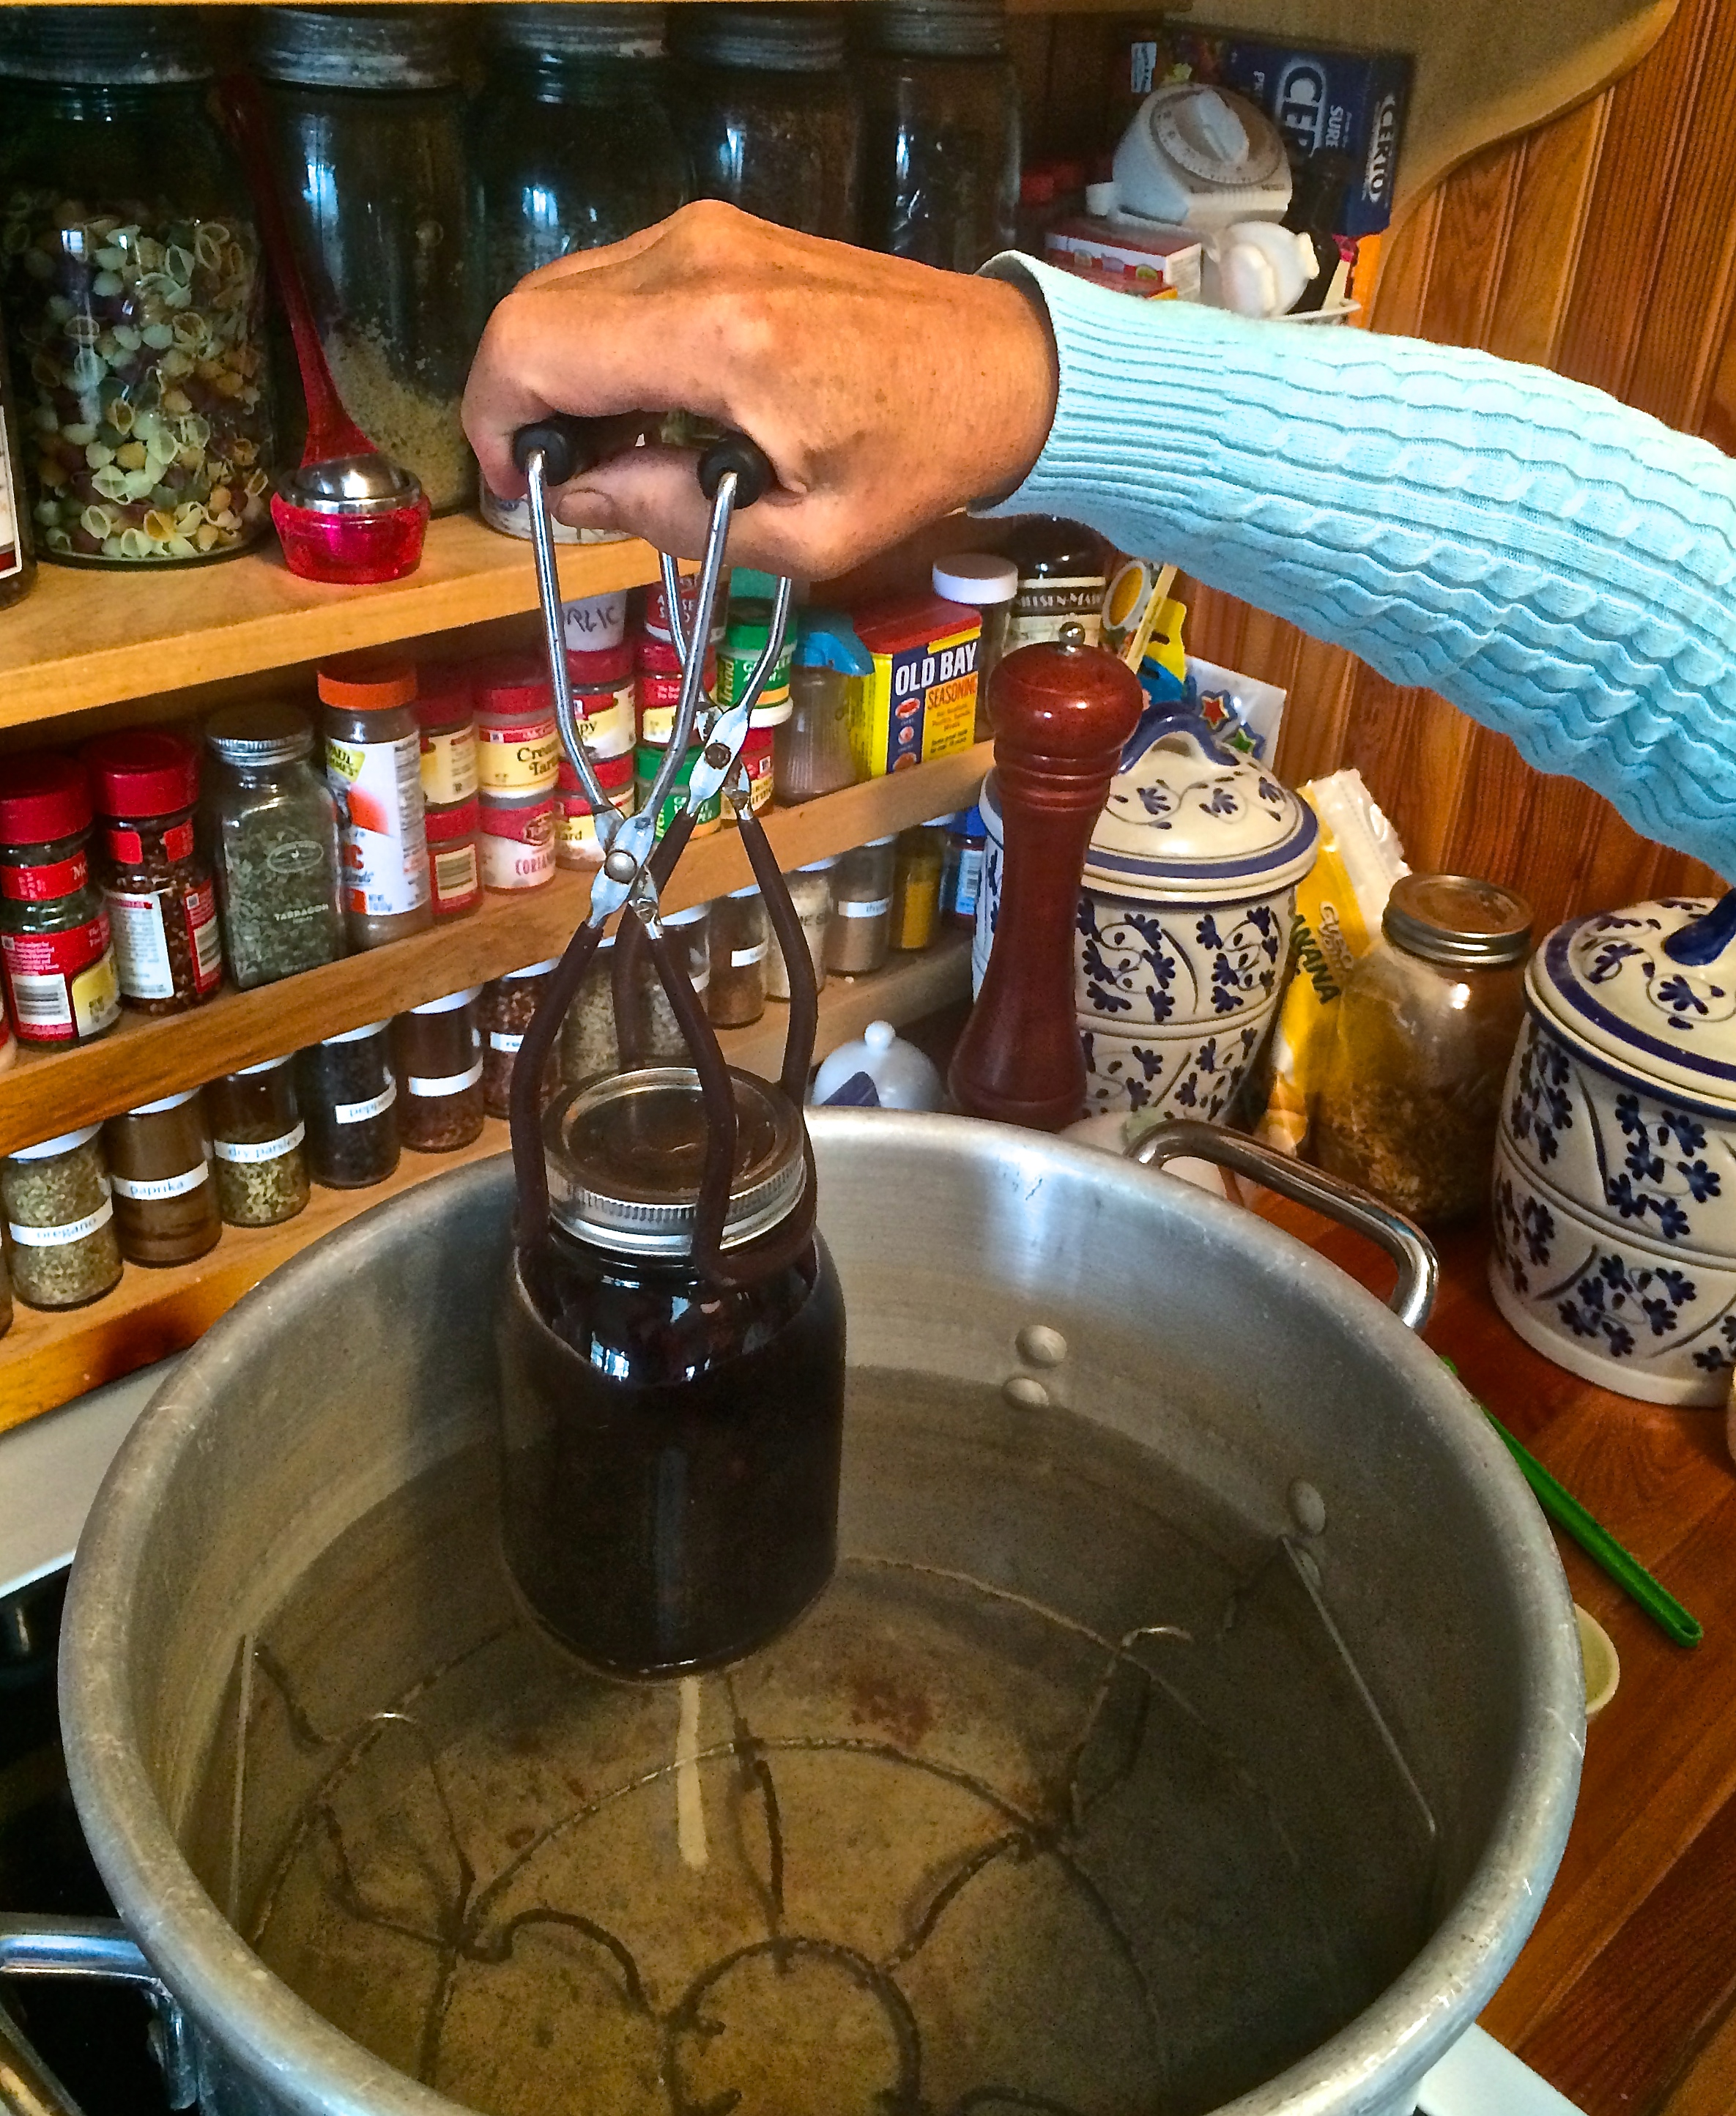 Use Tongs to Seal Jar with Heat